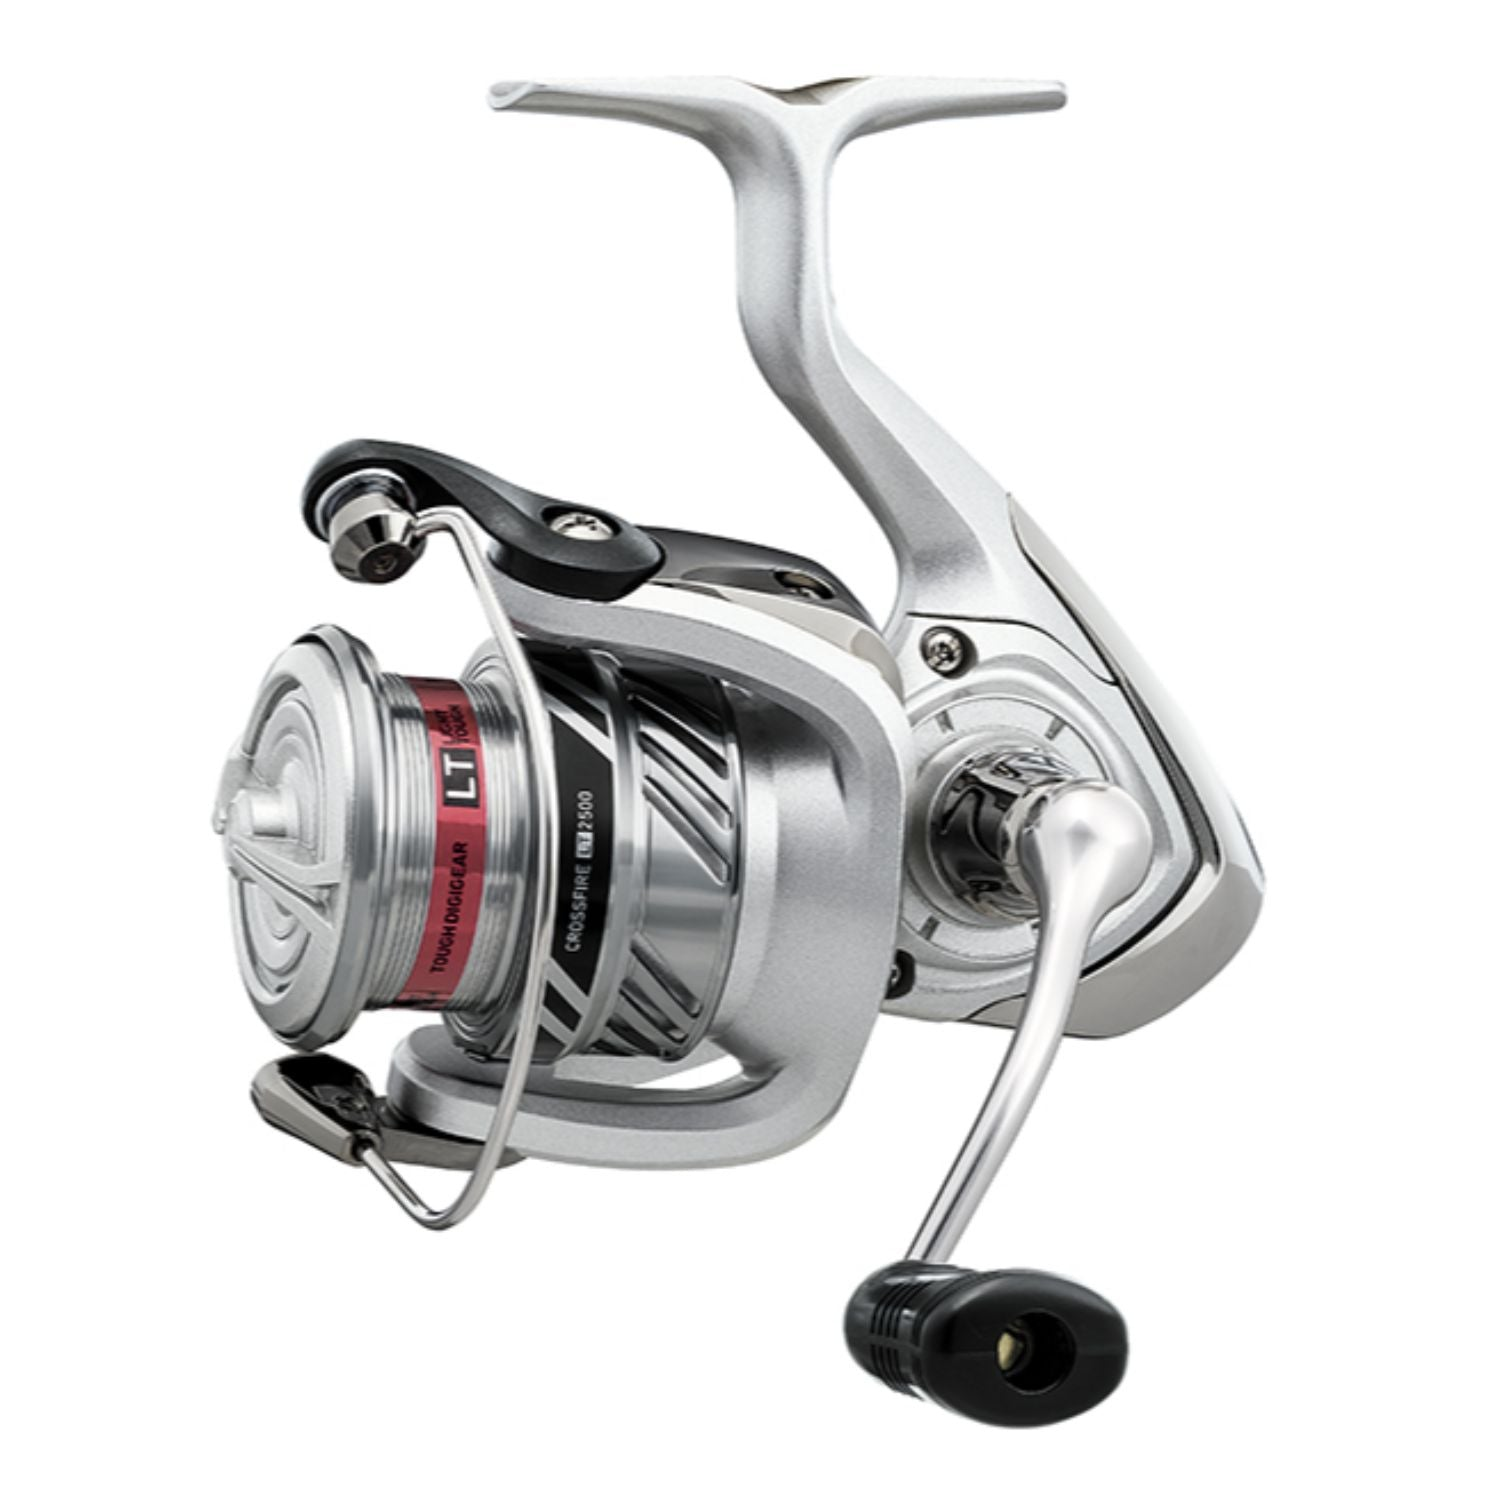 Daiwa CFLT4000-C Crossifre LT Spinning Reel 1BB+1 5.2:1